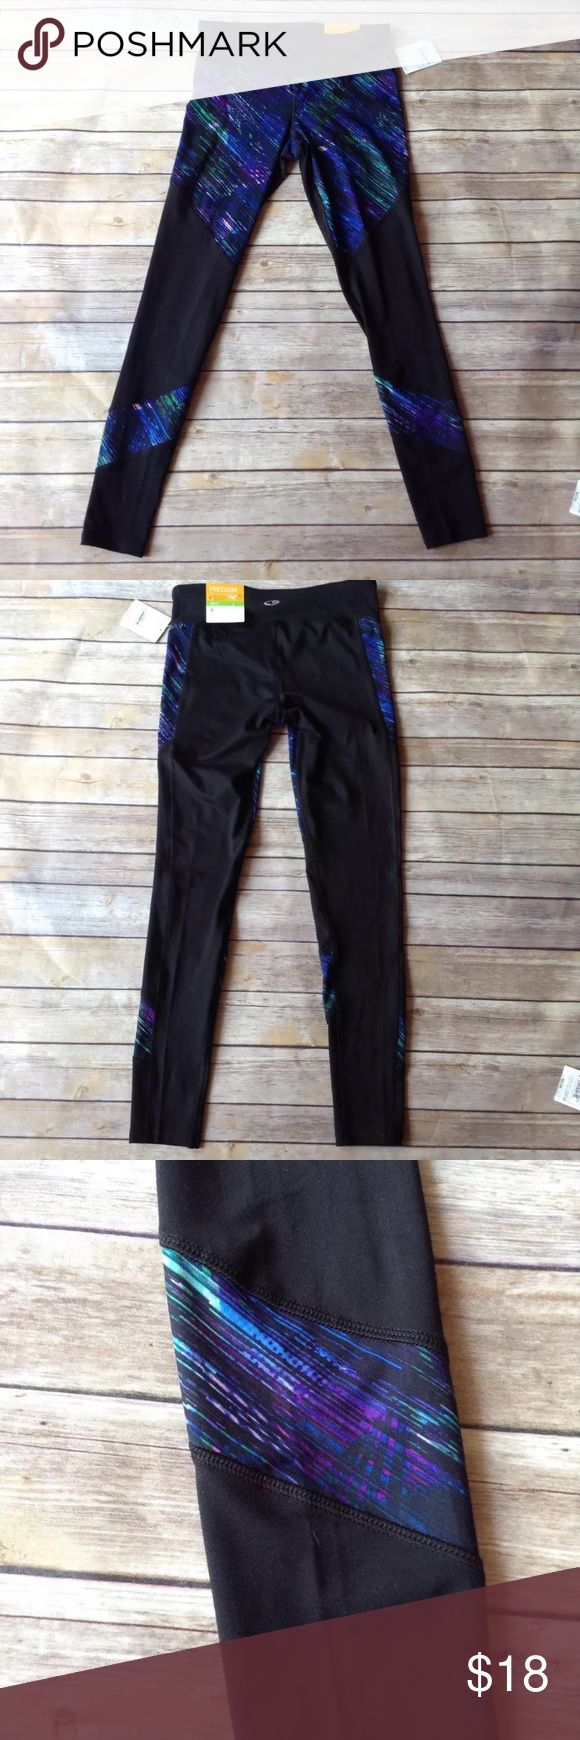 """C9 by Champion small DUODRY workout yoga leggings. New with tags C9 by Champion women's size small DUODRY black with green blue and purple accents workout yoga leggings. Excellent condition. No rips holes or stains. 88% polyester 12% spandex. Retail $27.99  Measurements: Length- 34"""" Waist- 26""""- 30"""" Inseam- 28""""  I ship fast! Pay before 4:30pm Monday thru Friday and I will ship the same day! Thank you for looking! Check out my other items! C9 Pants Leggings"""